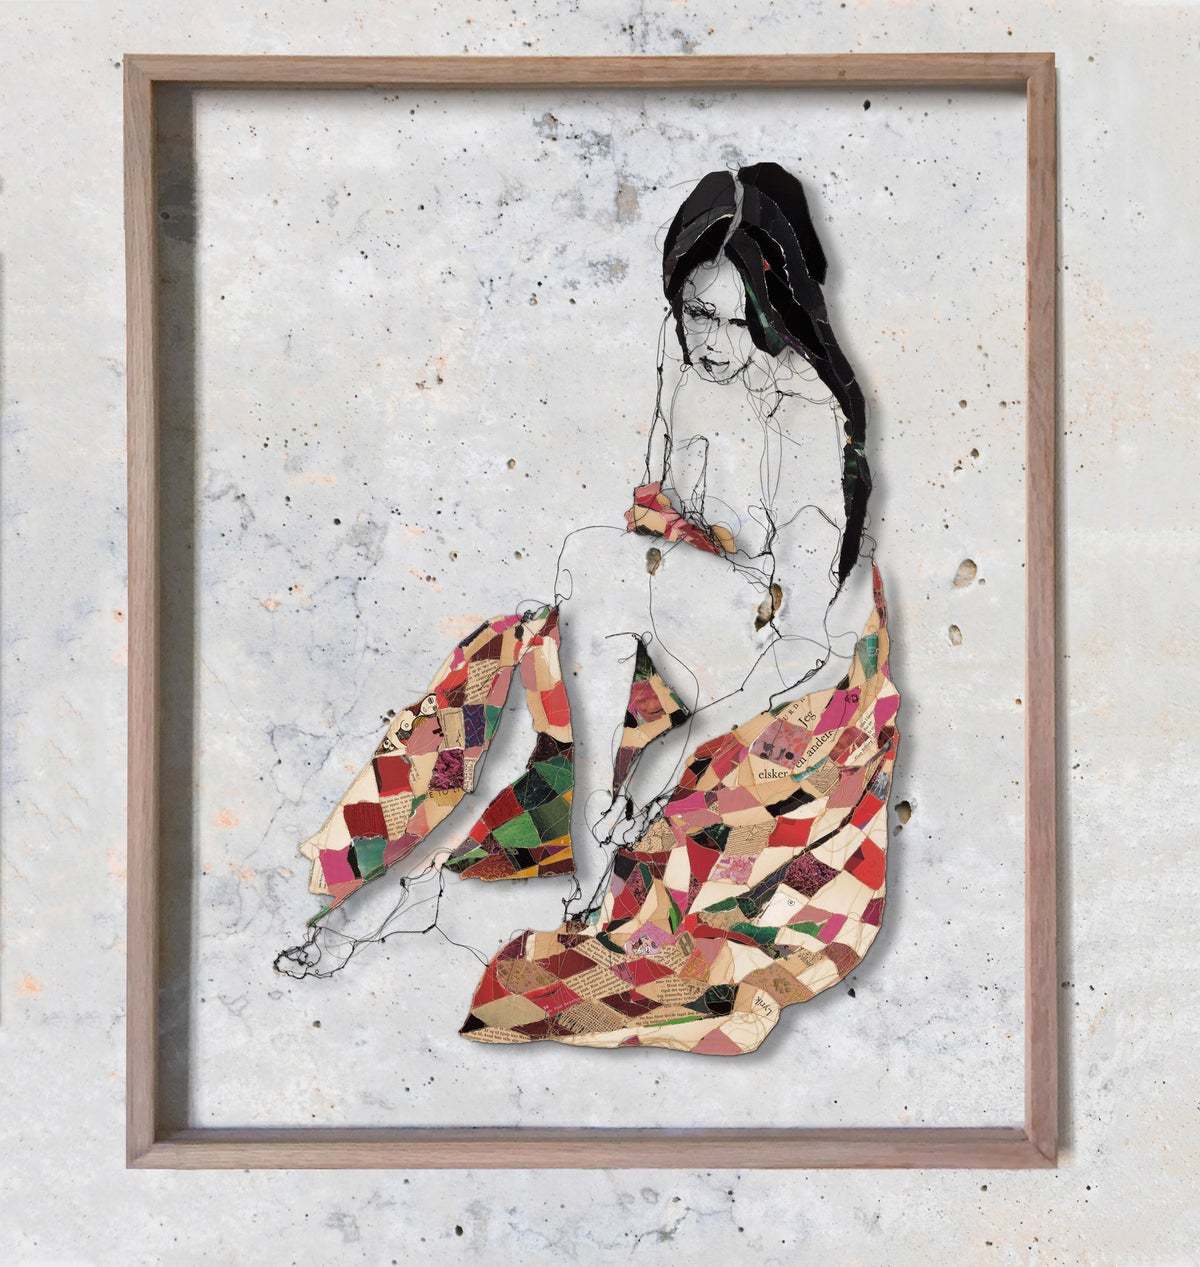 Image of Melancholic woman in red blanket - original